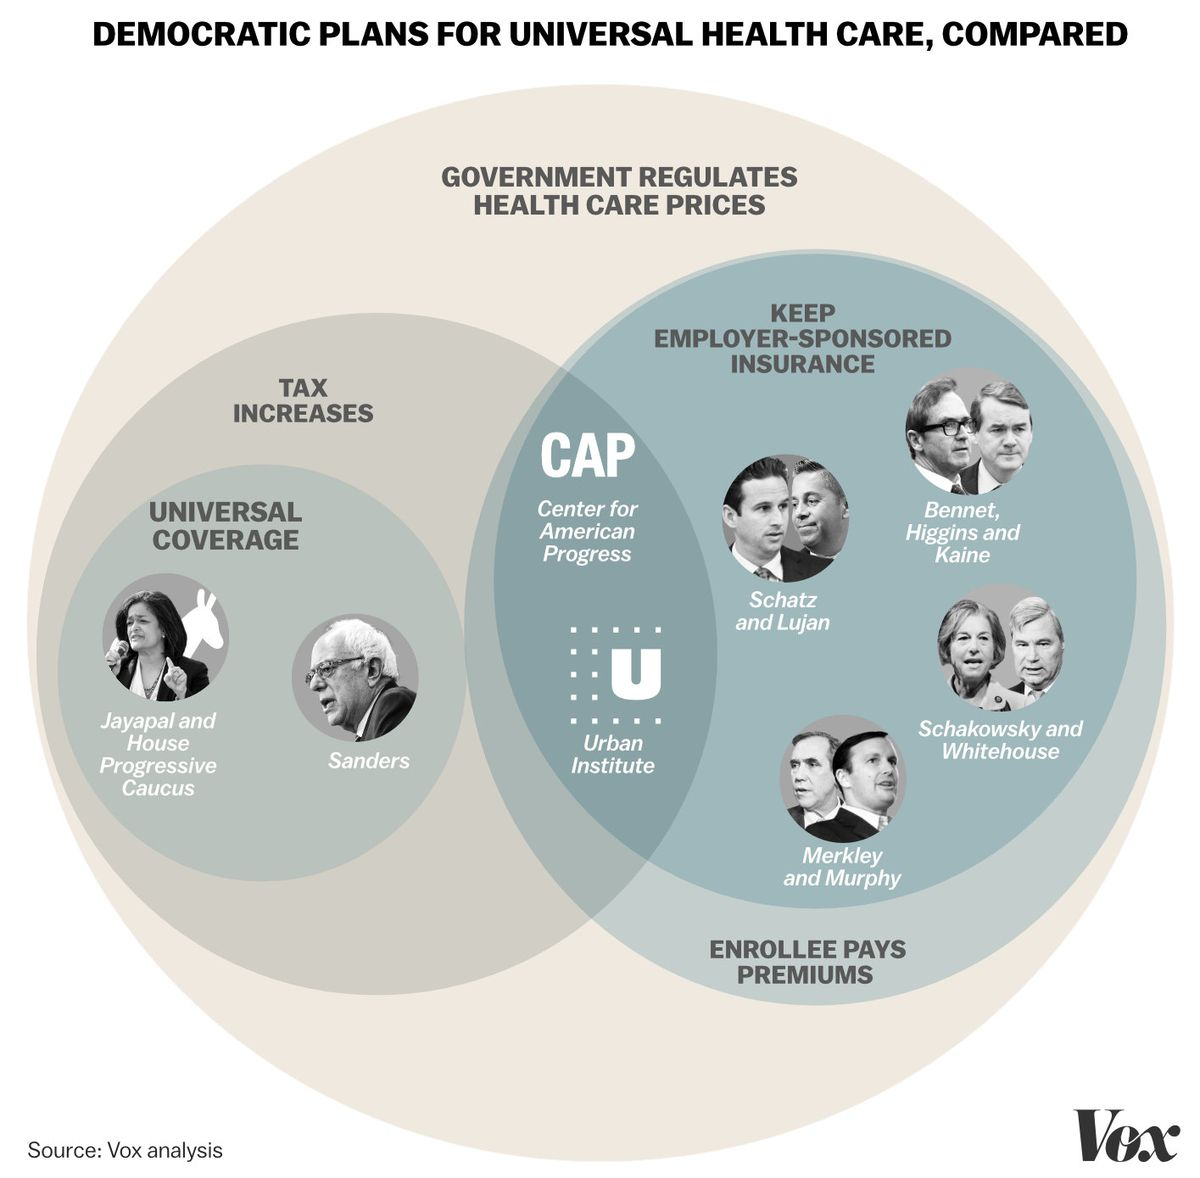 Here's How 8 Of The Democrats' Plans For Universal Health Care Work